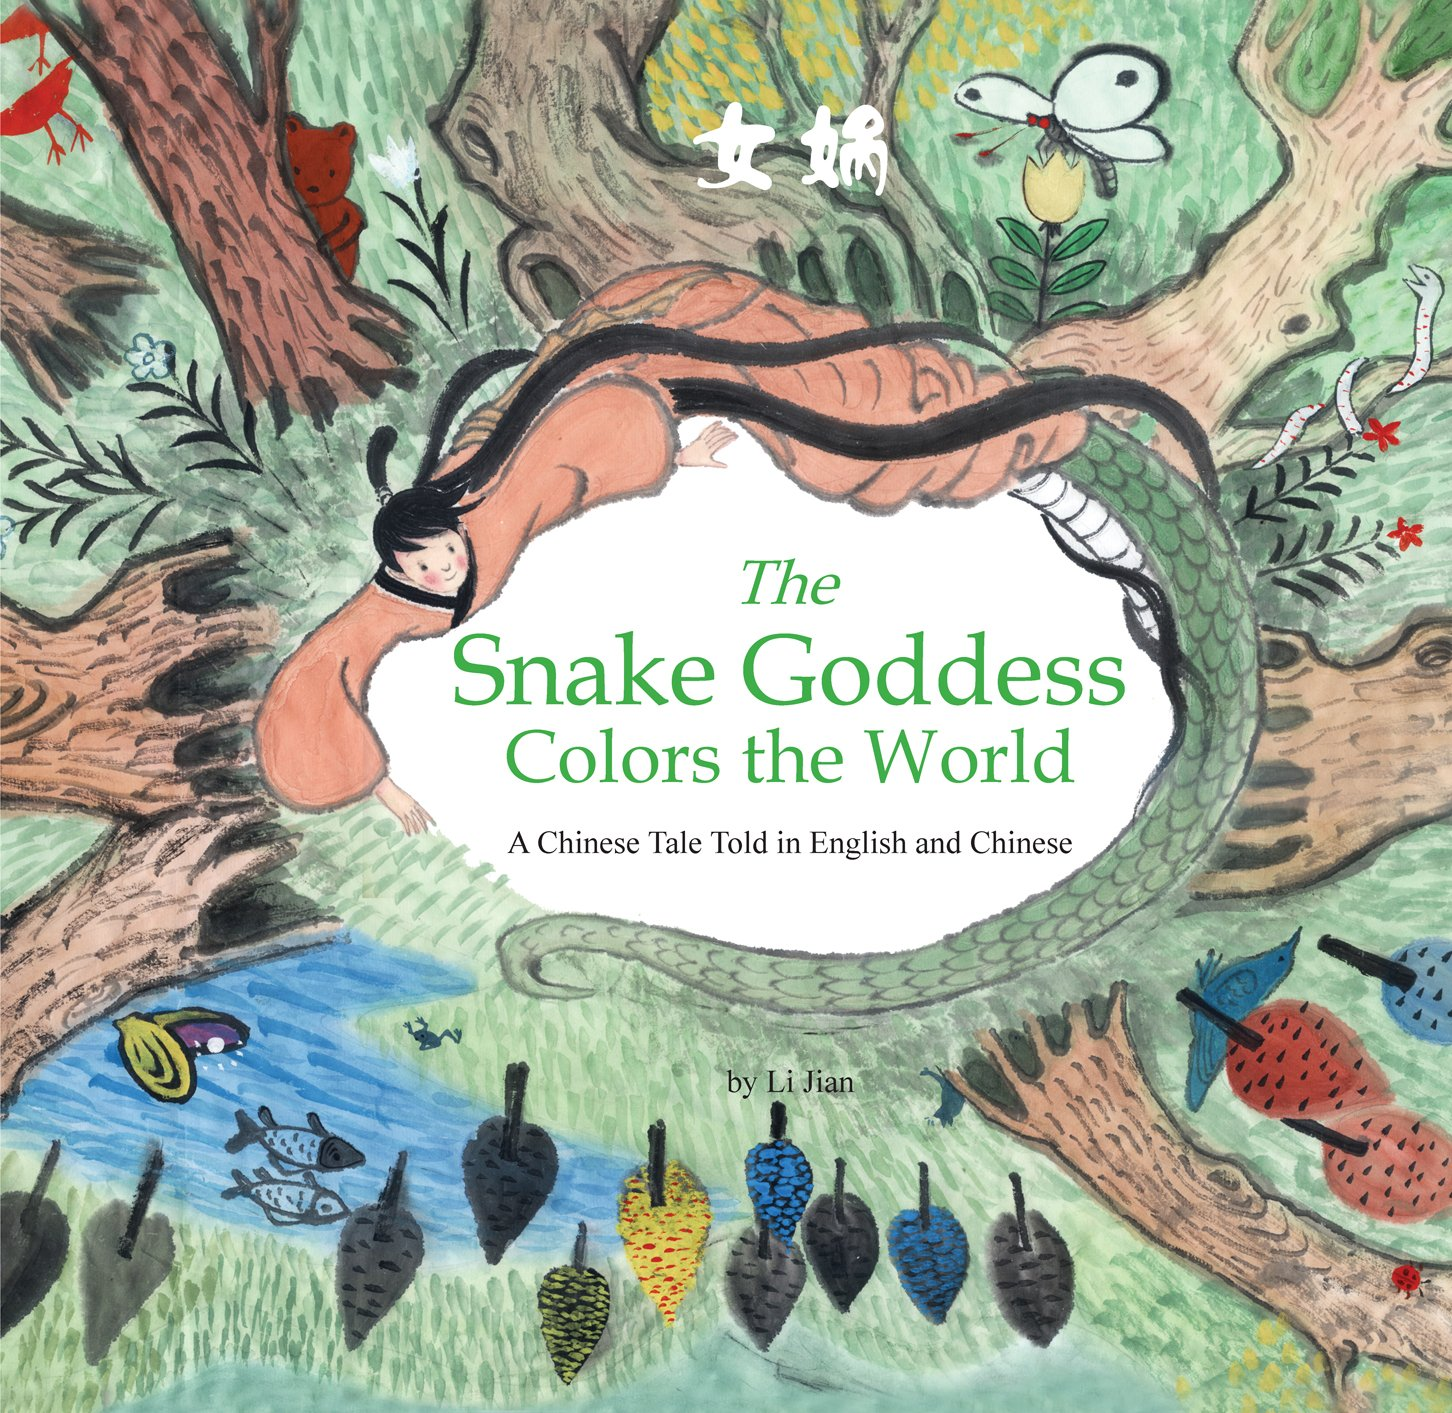 The Snake Goddess Colors the World: Stories of the Chinese Zodiac, A Chinese Tale Told in English and Chinese